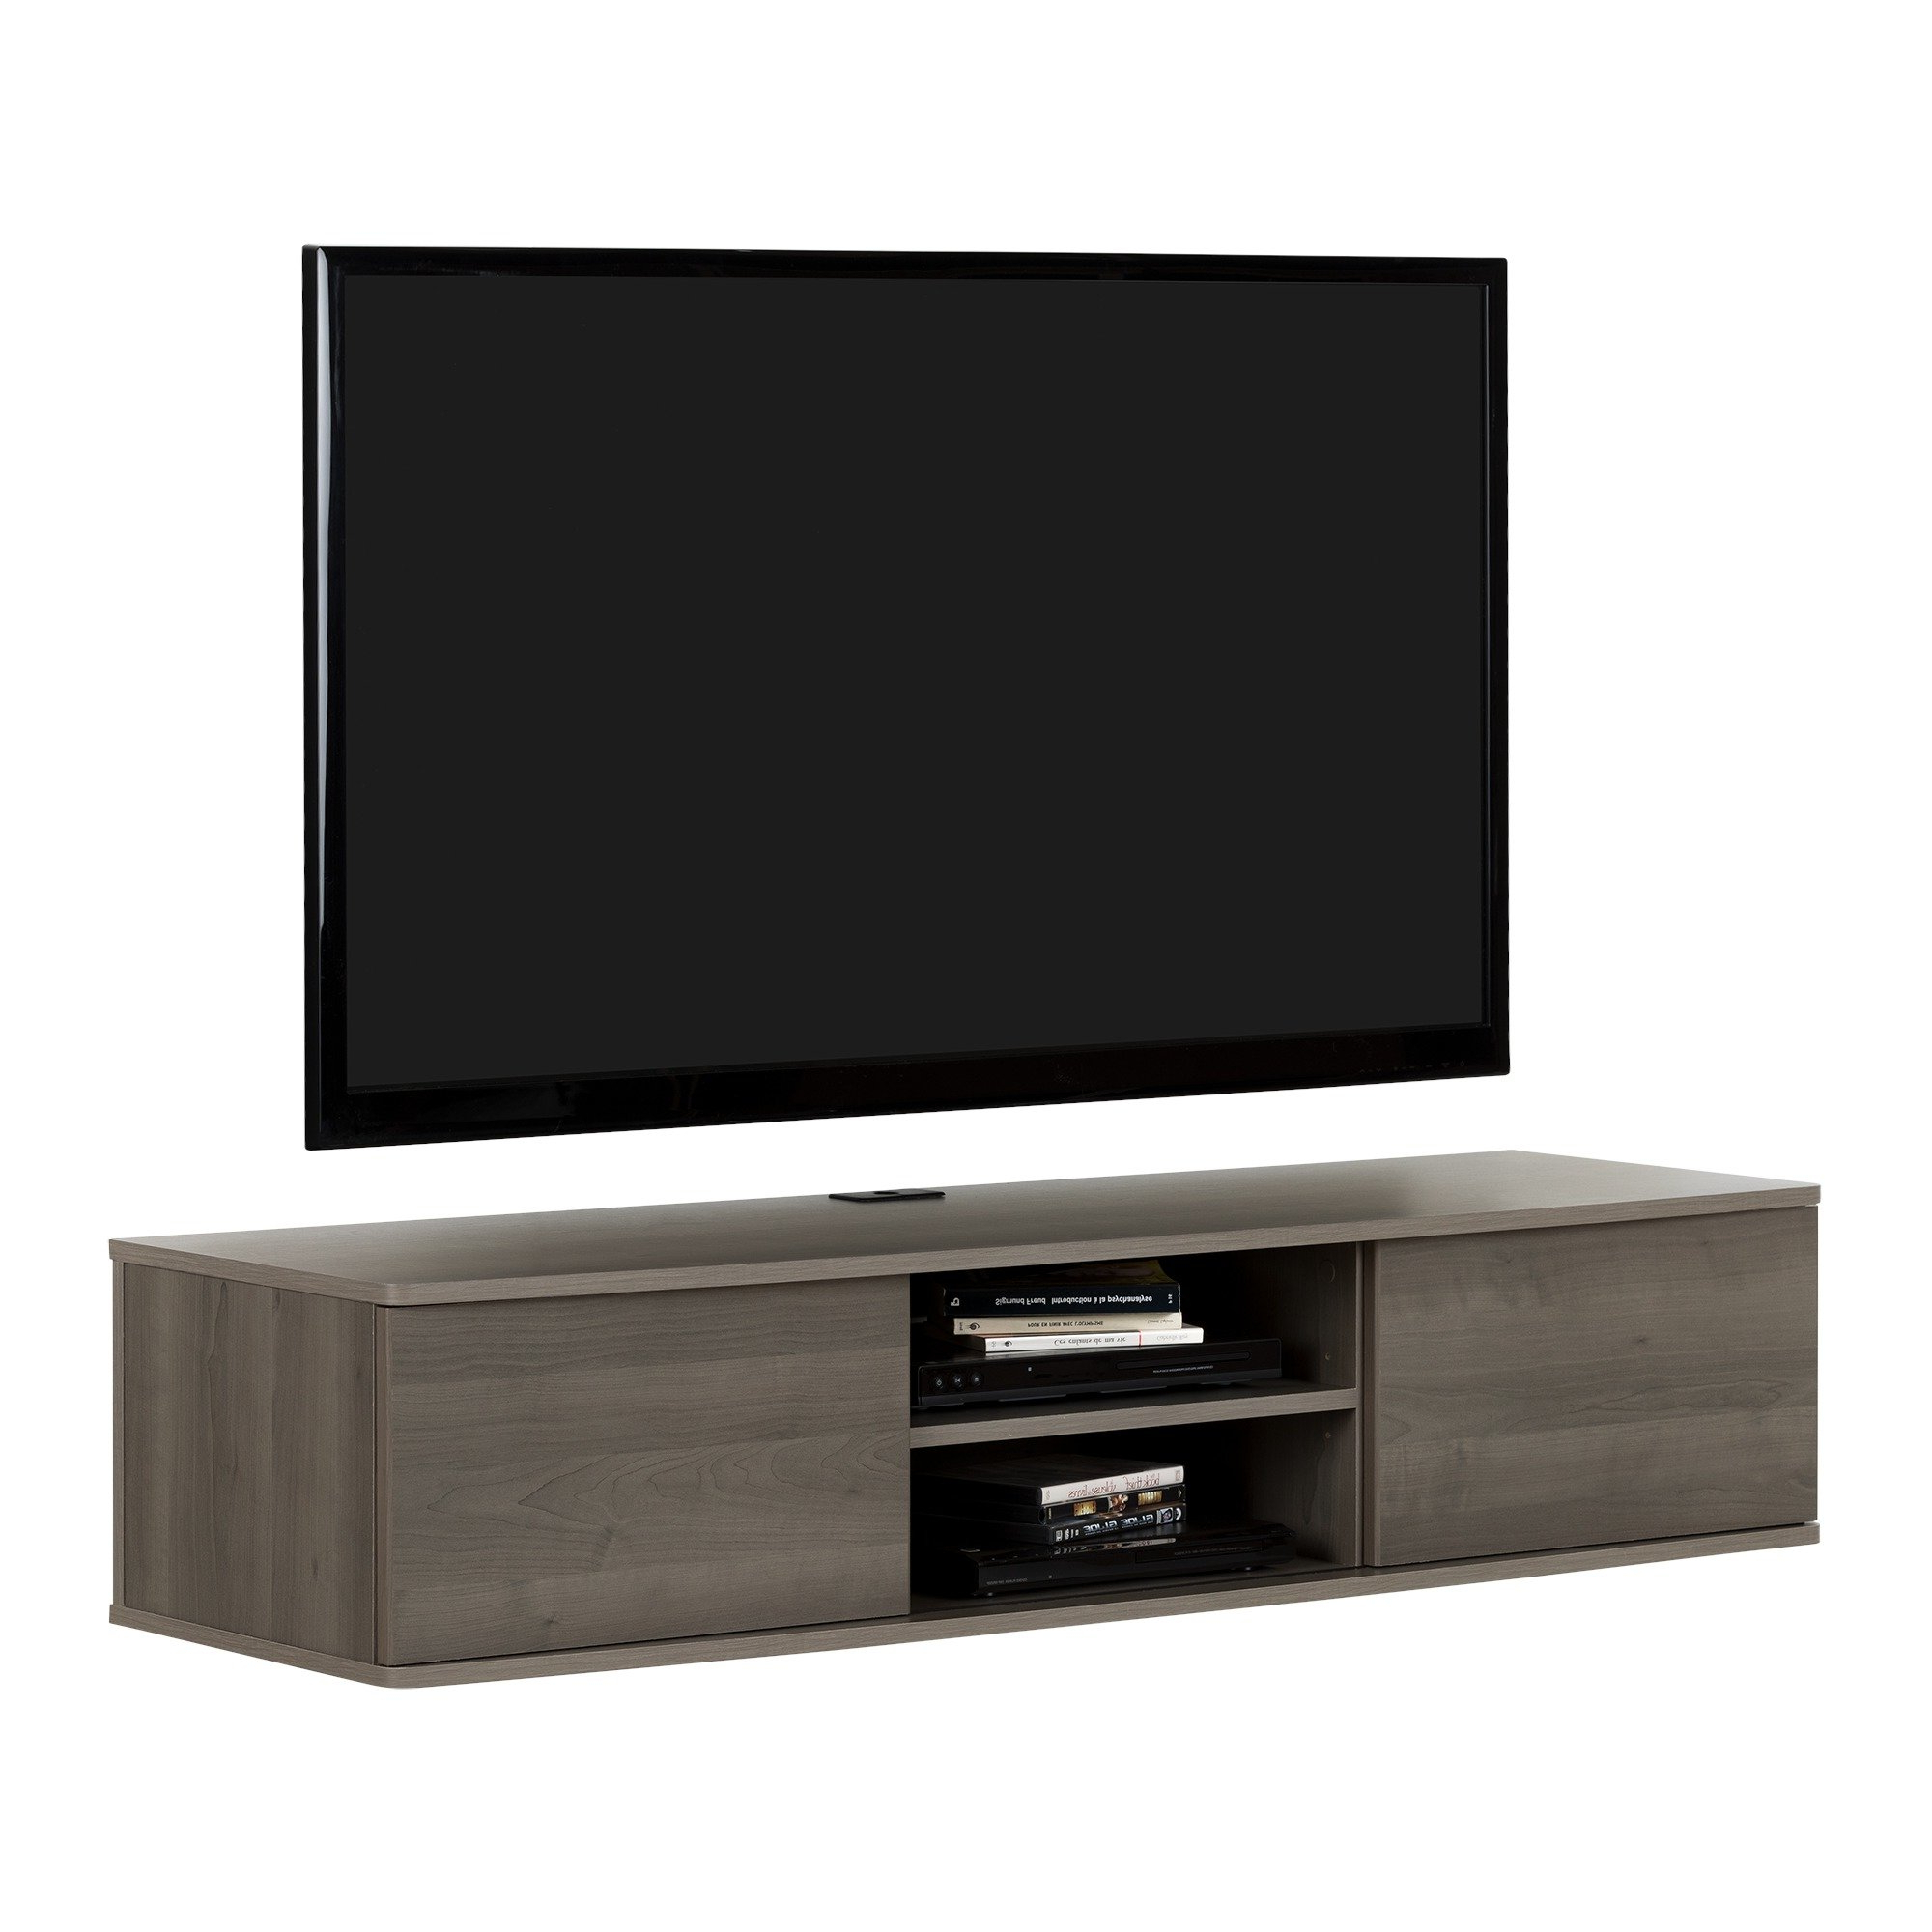 Allmodern Throughout Century Blue 60 Inch Tv Stands (Gallery 12 of 20)